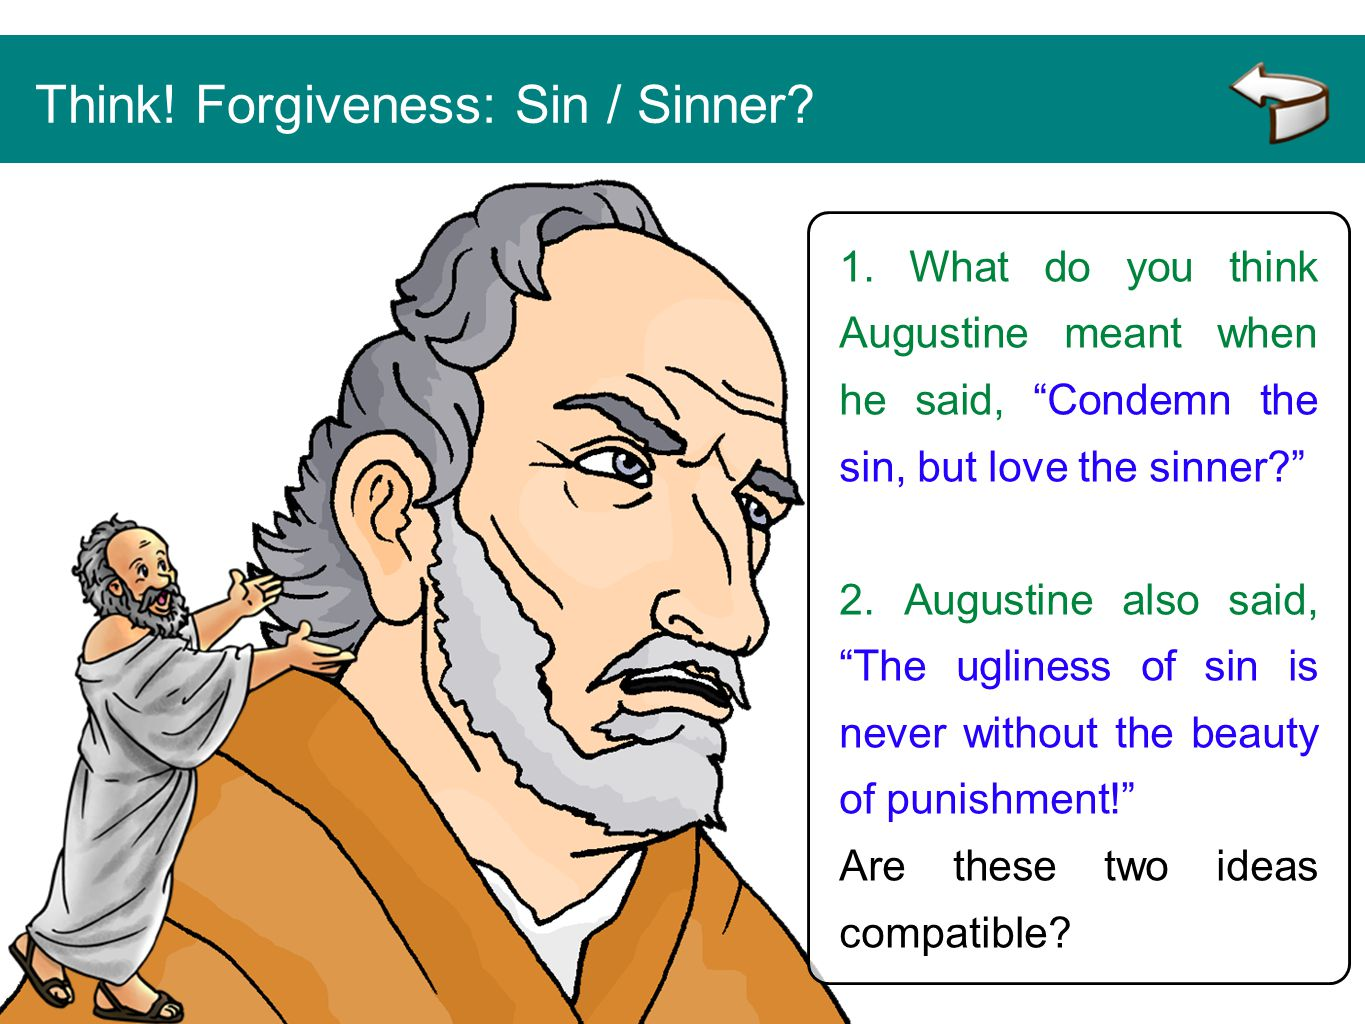 Think! Forgiveness: Sin / Sinner